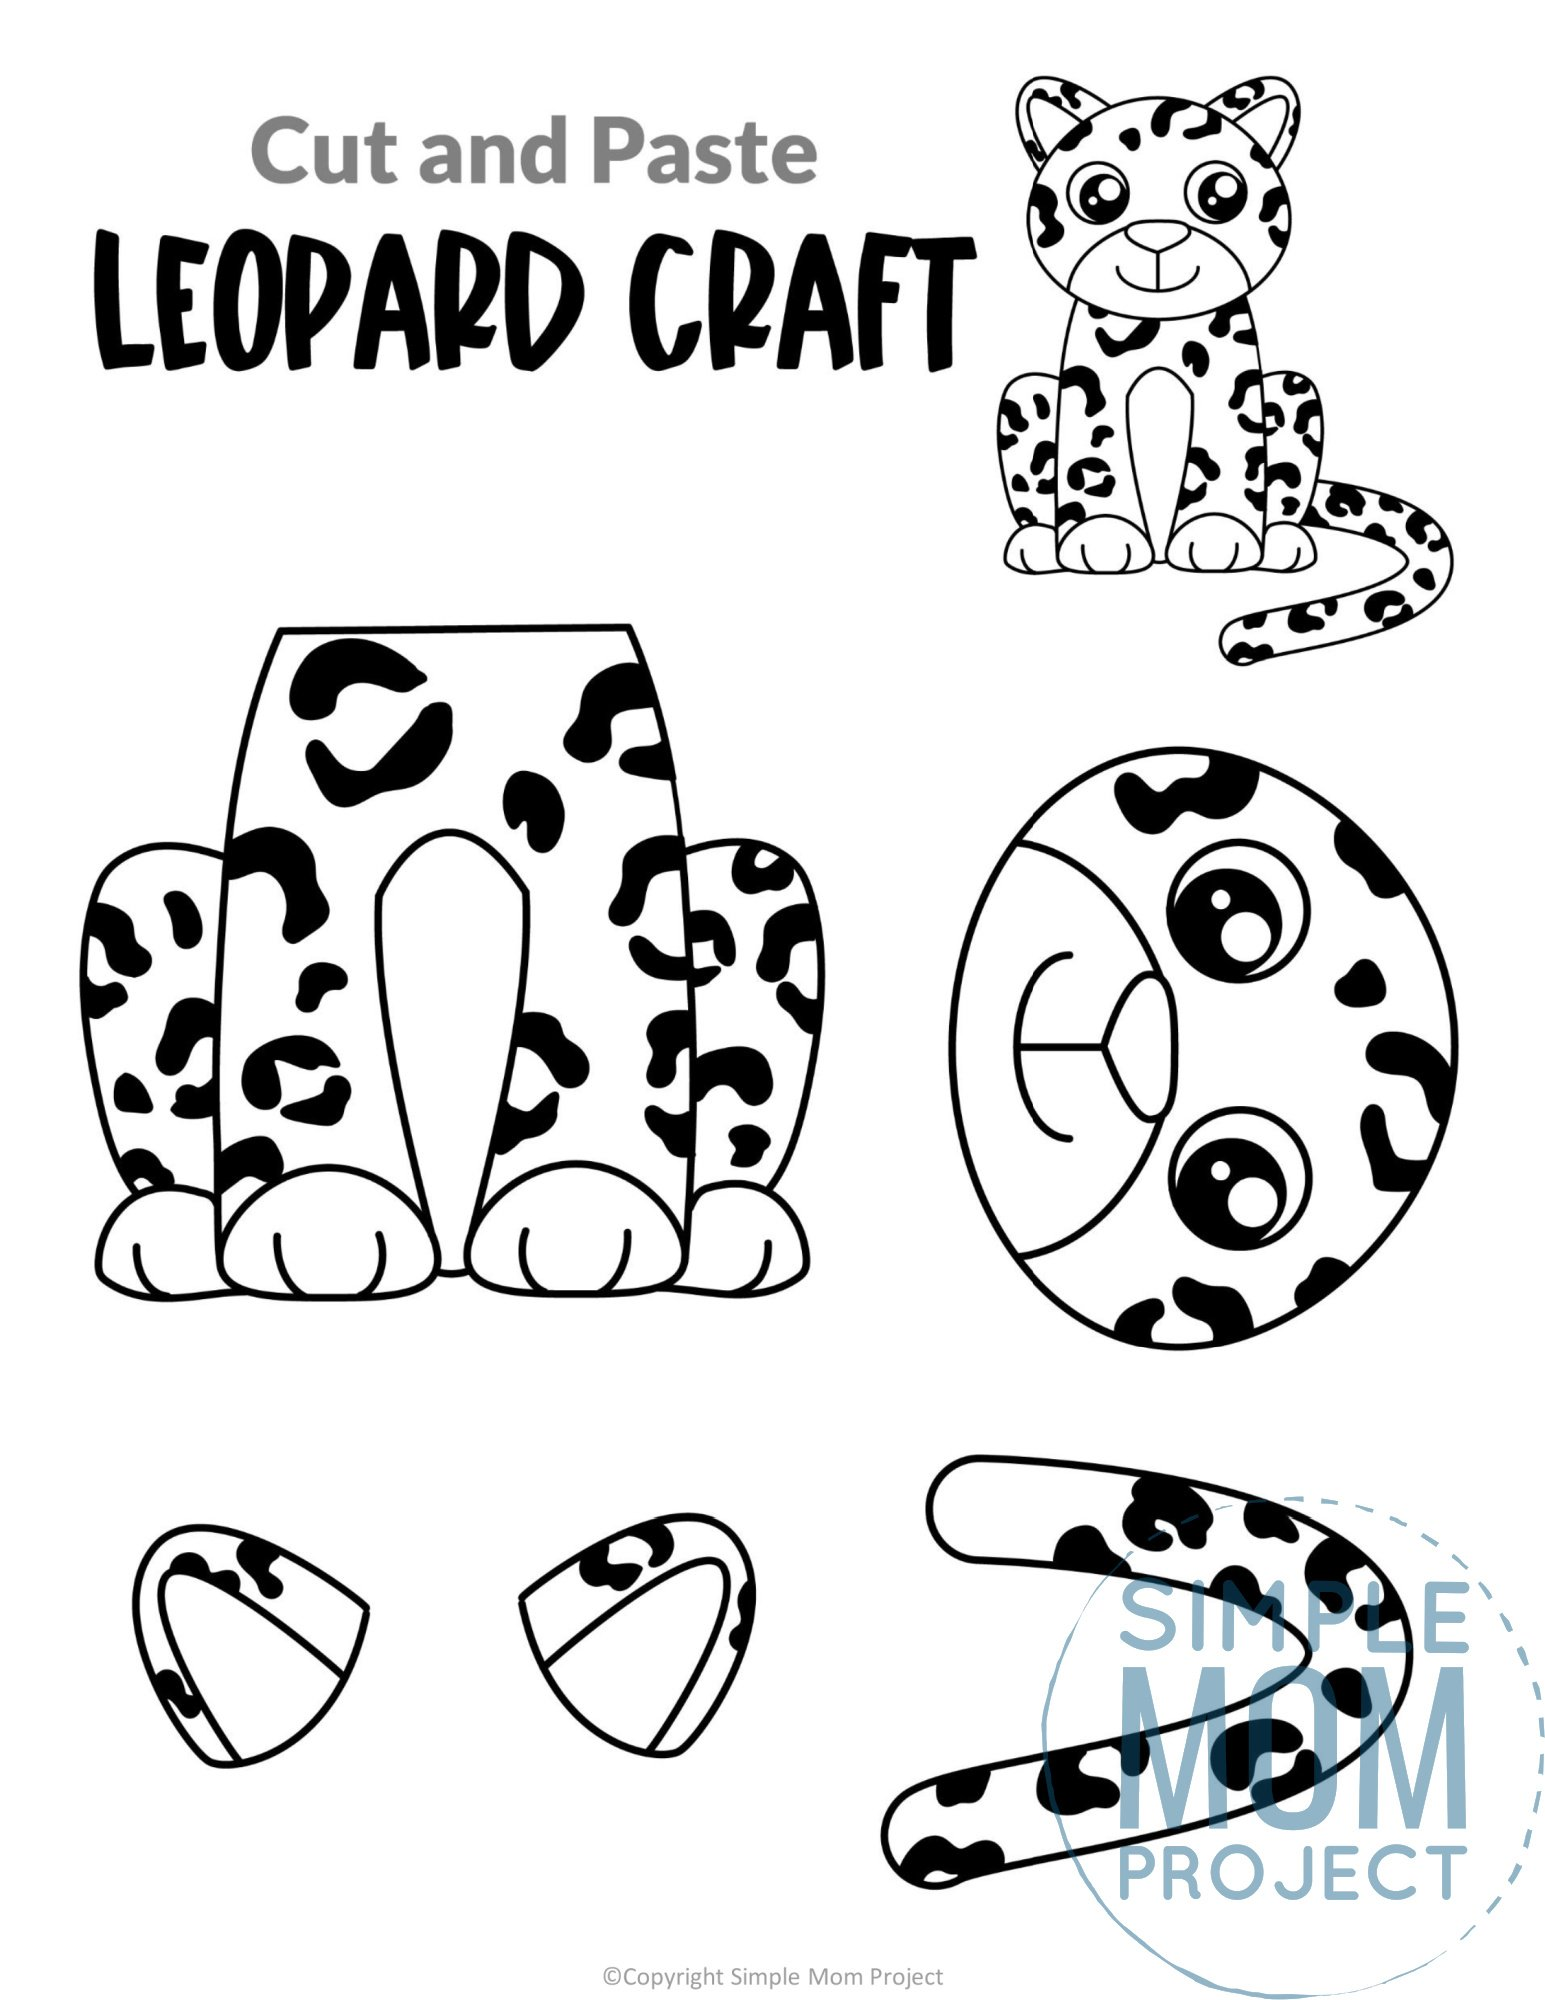 Leopard Cut and Paste Craft for Toddlers, Preschoolers and Kindergarteners